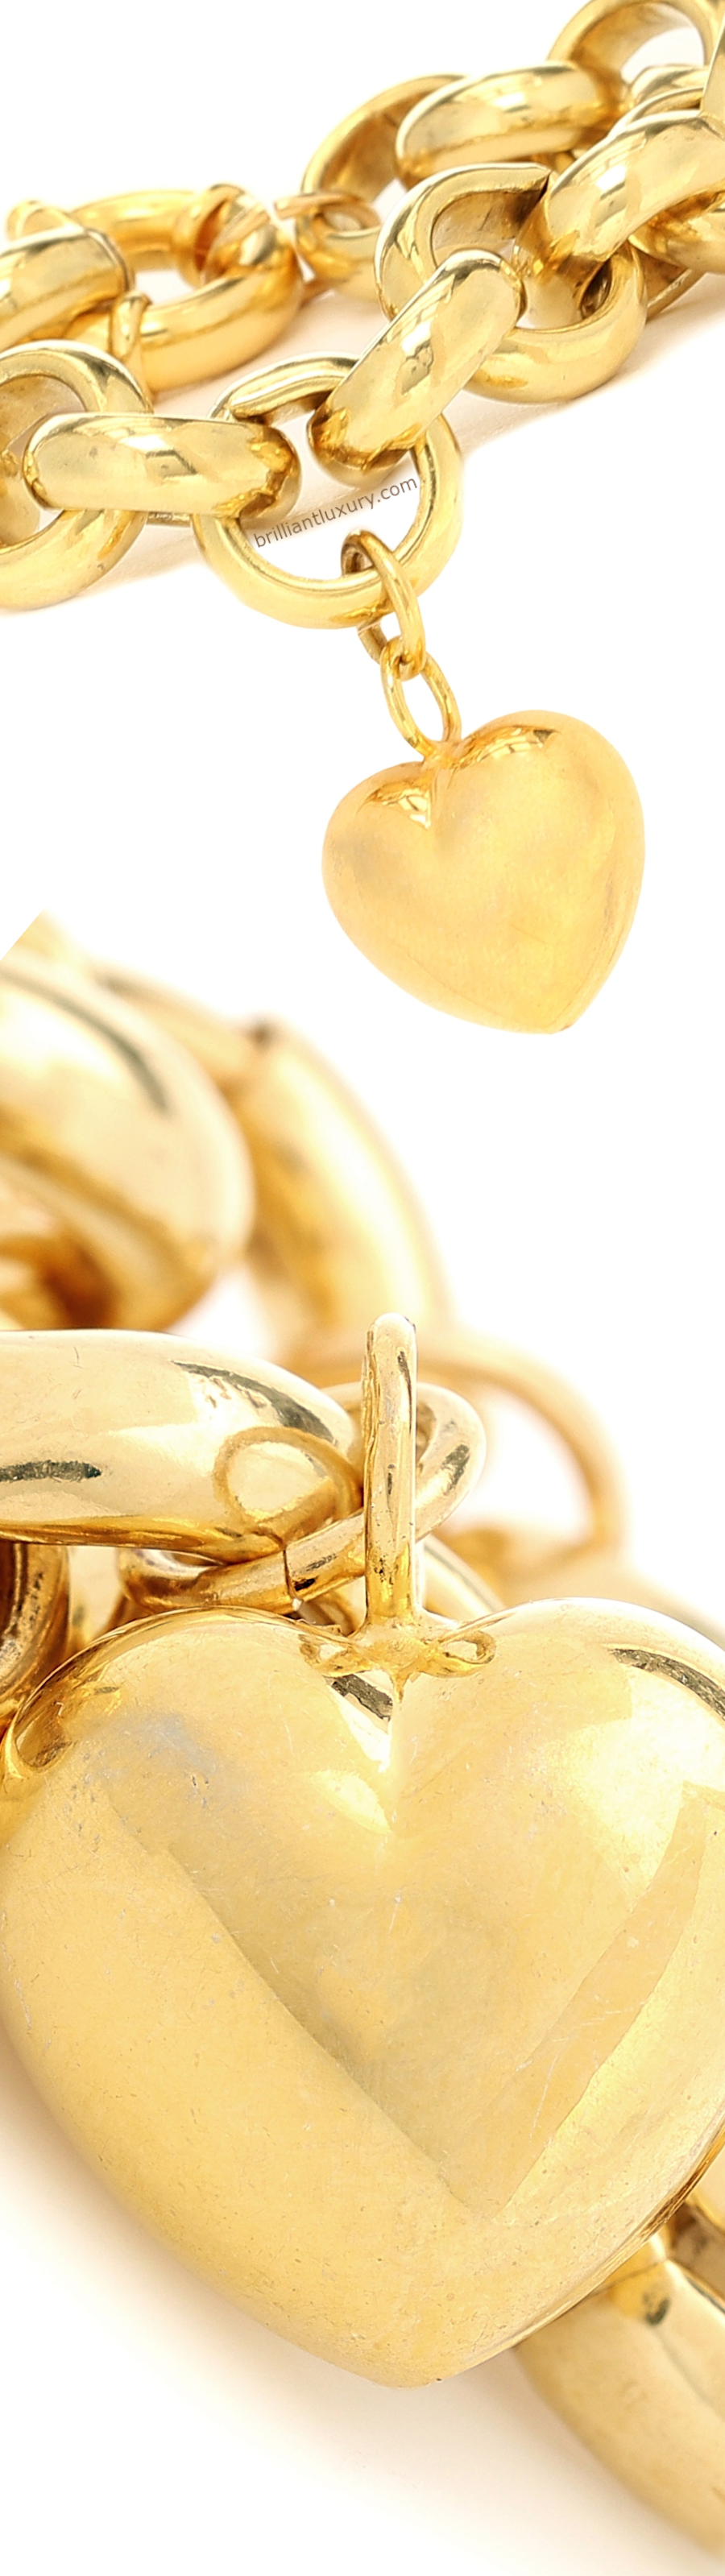 Timeless Pearly gold-plated bracelet with heart charm #jewelry